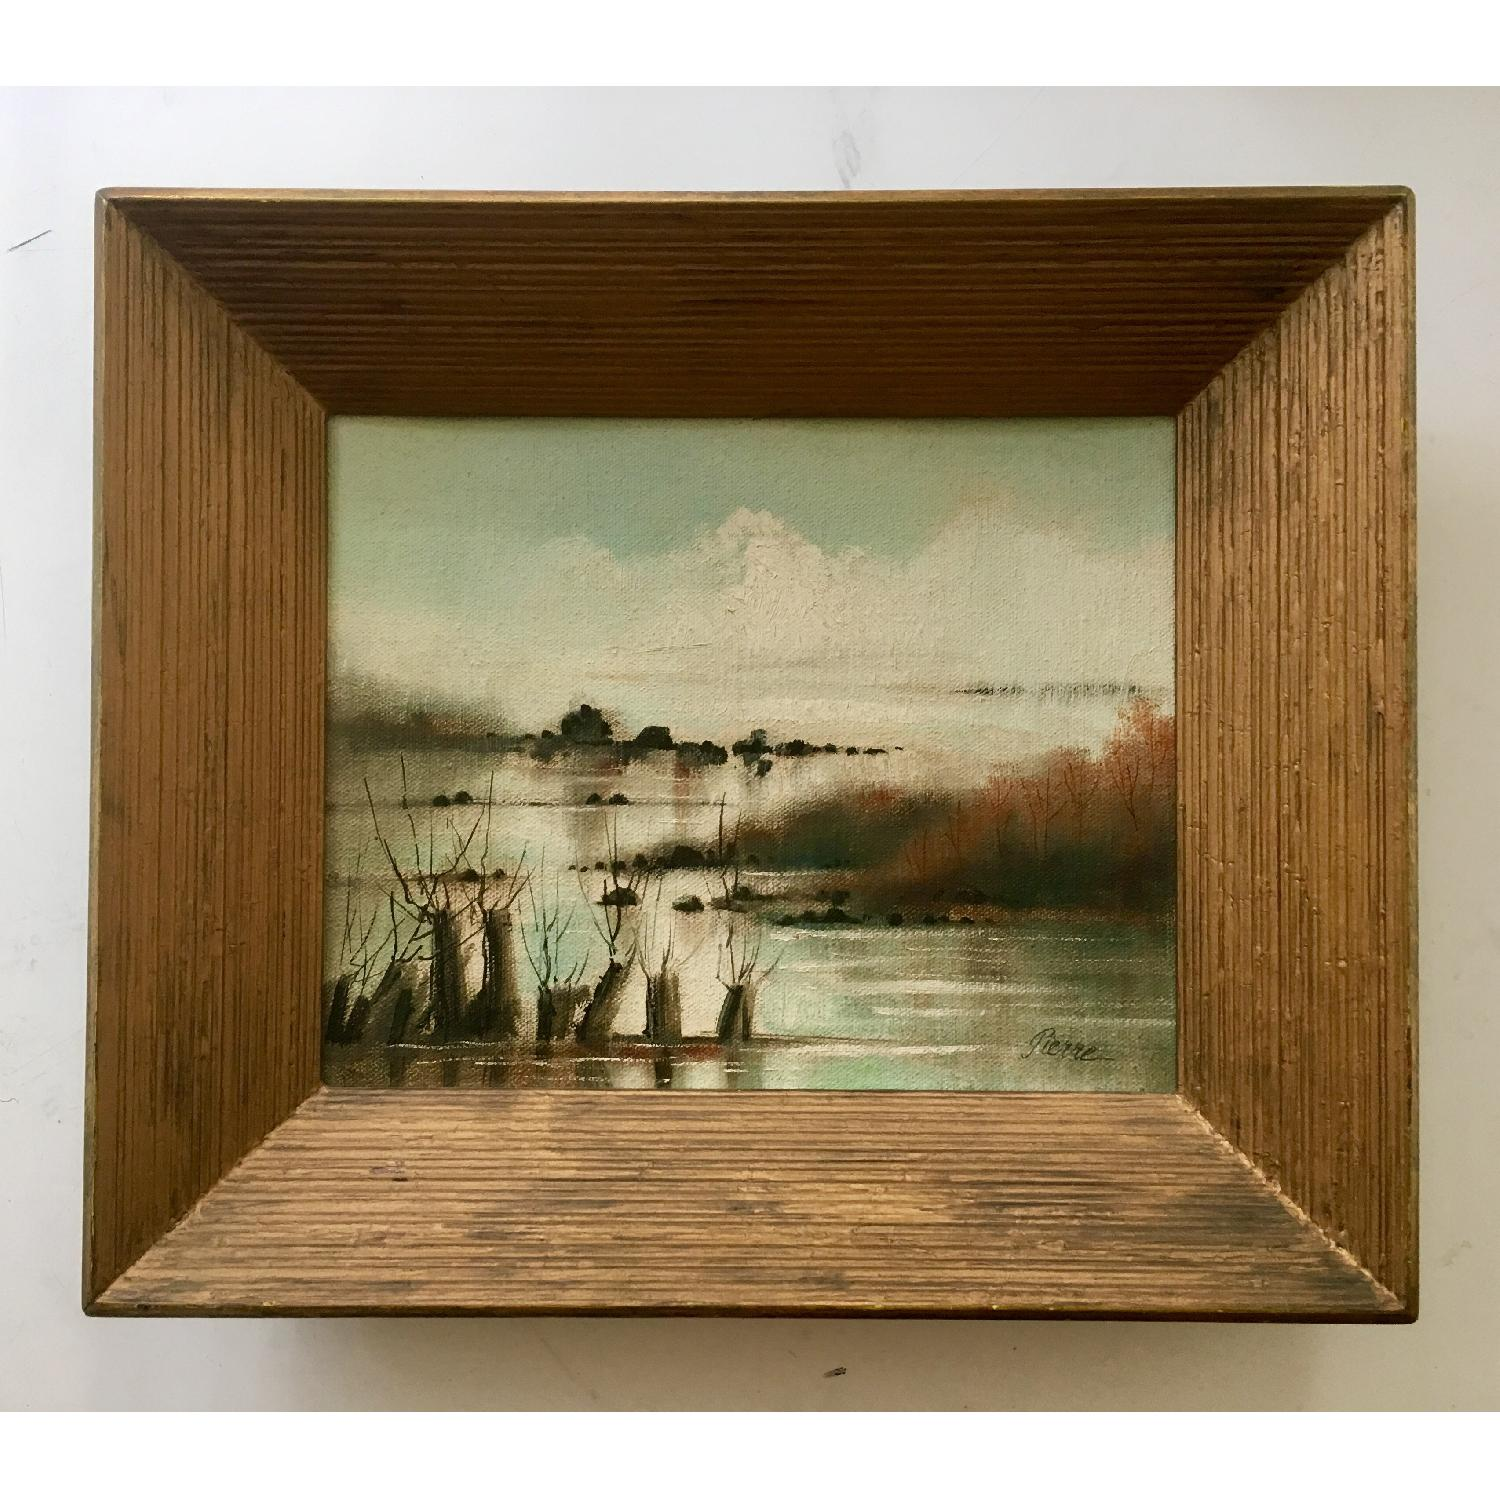 Vintage Dreamy Beach Waterscape Painting - image-1